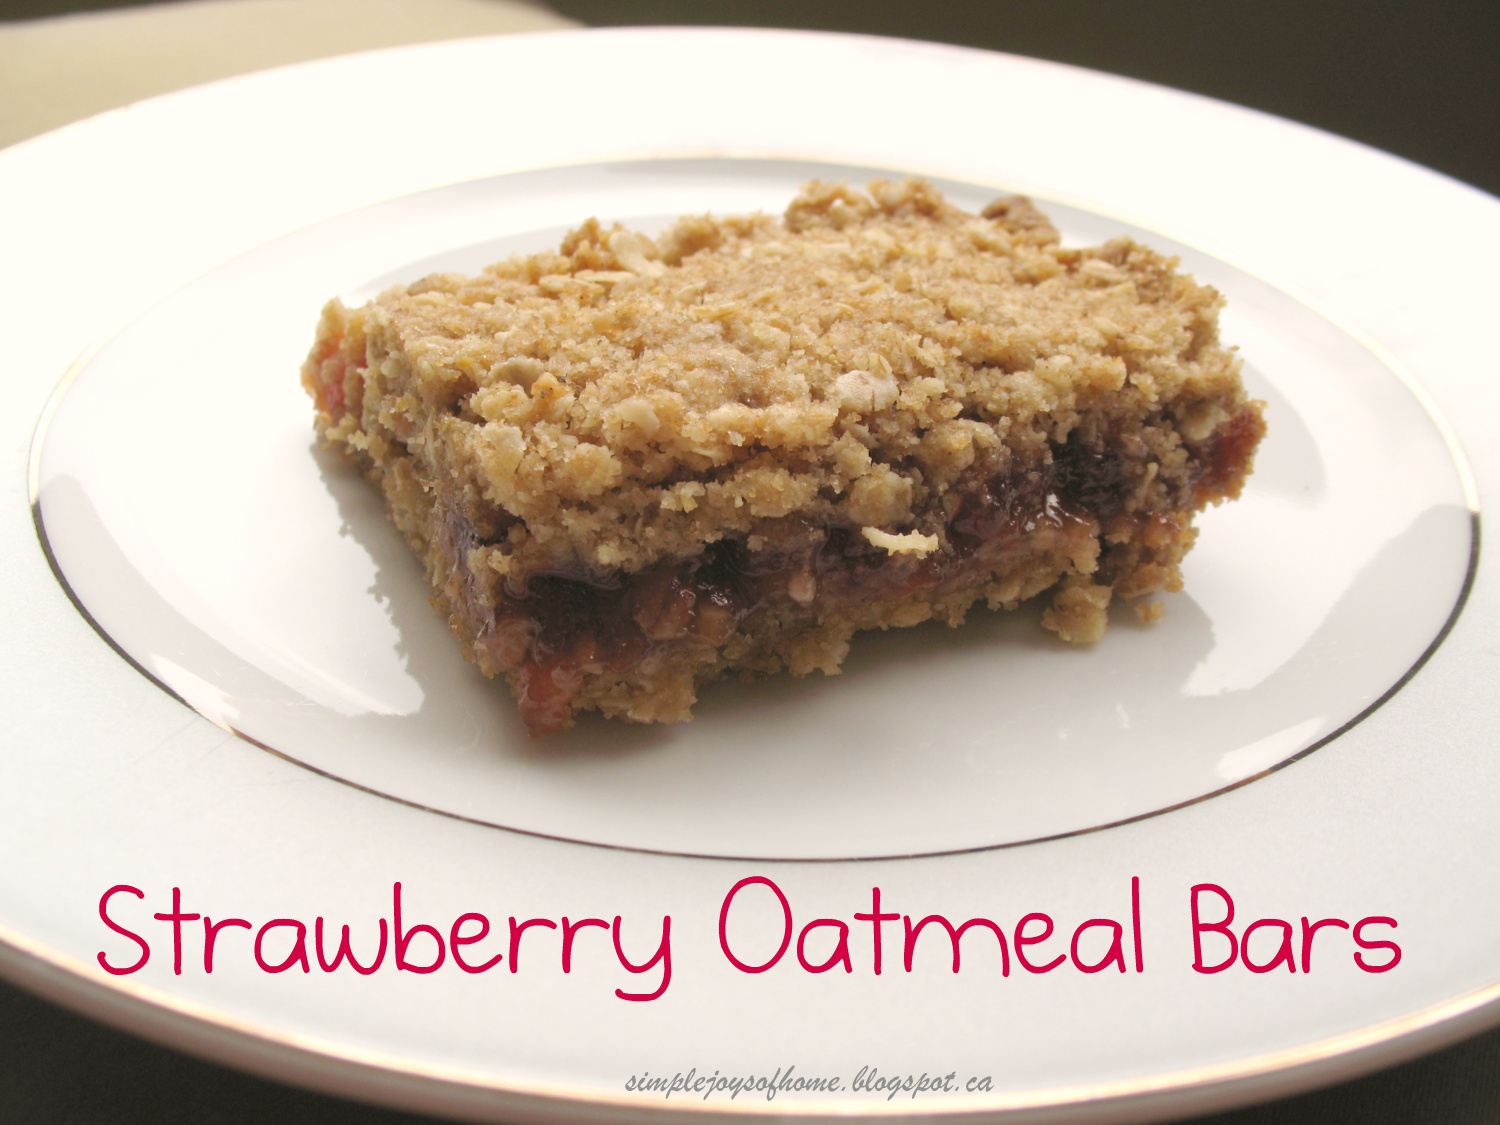 Simple Joys of Home: Strawberry Oatmeal Bars